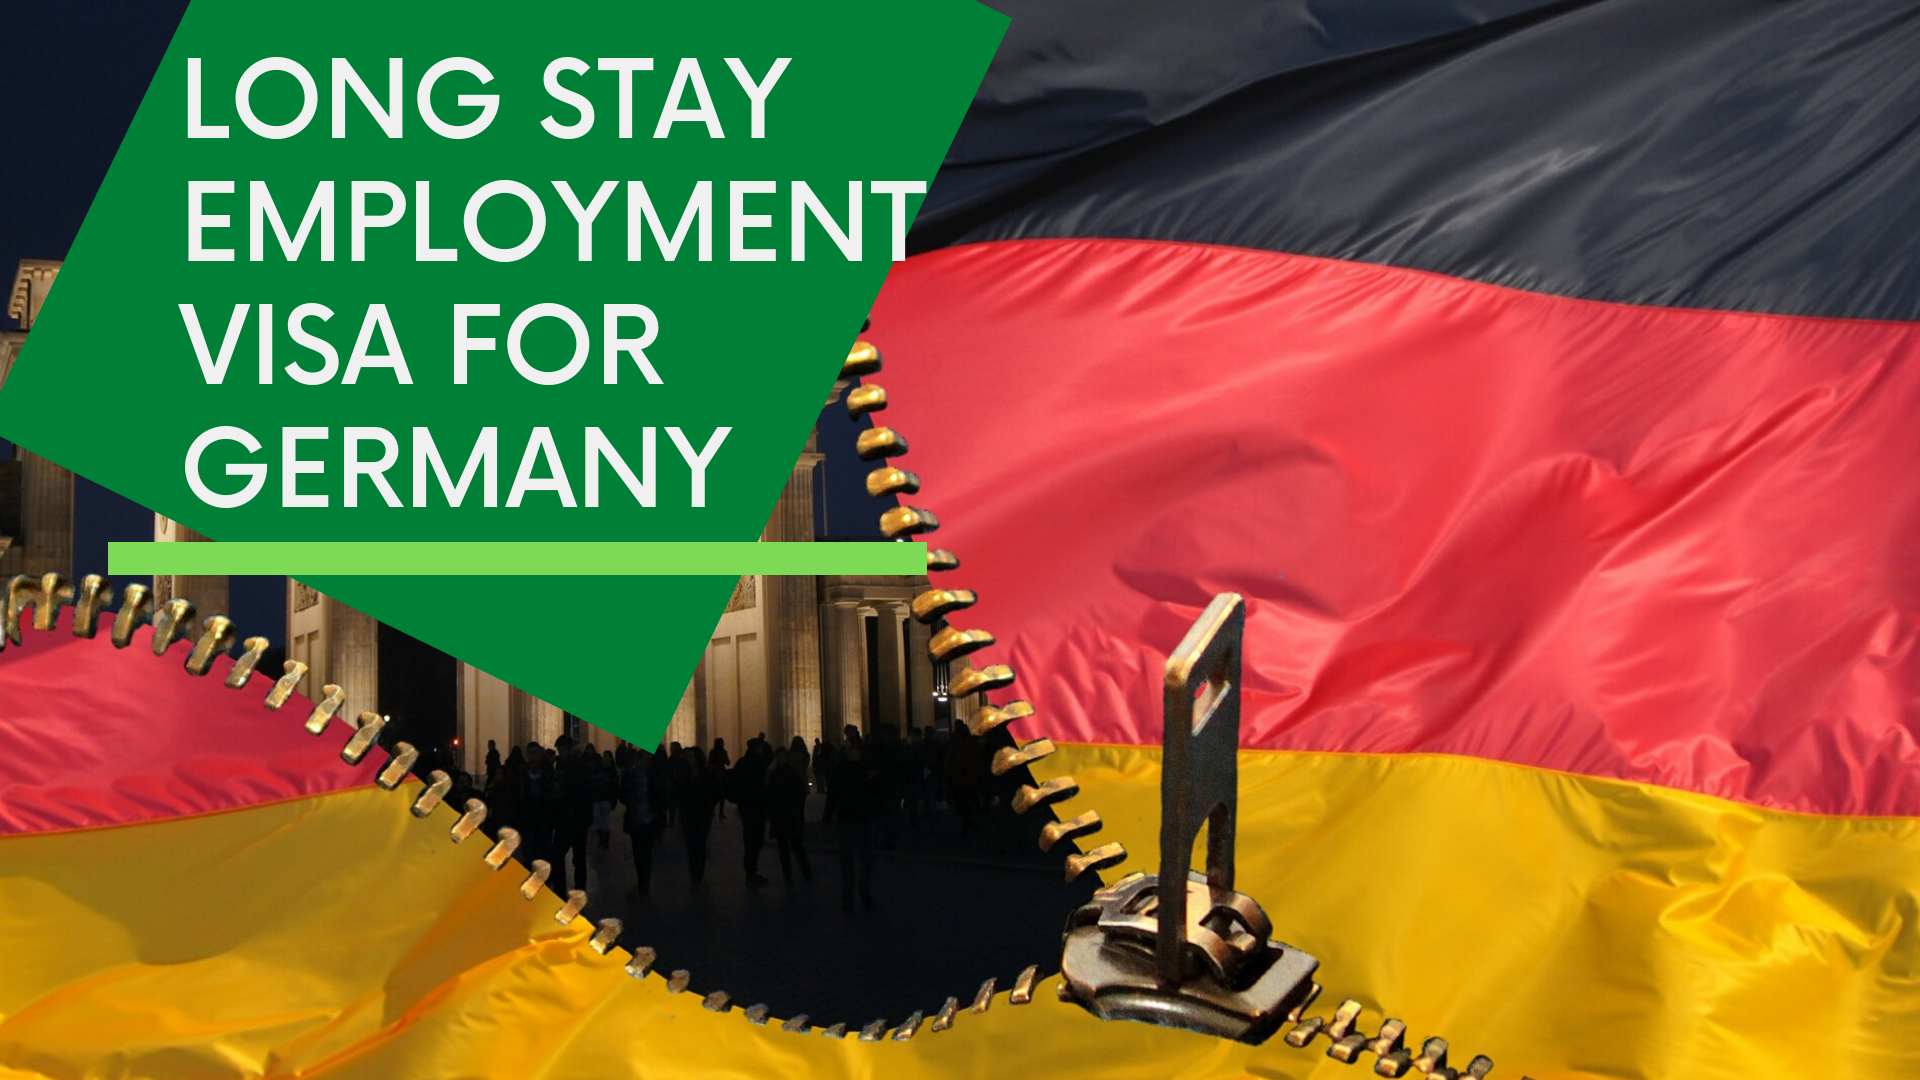 Long Stay Employment Visa for Germany